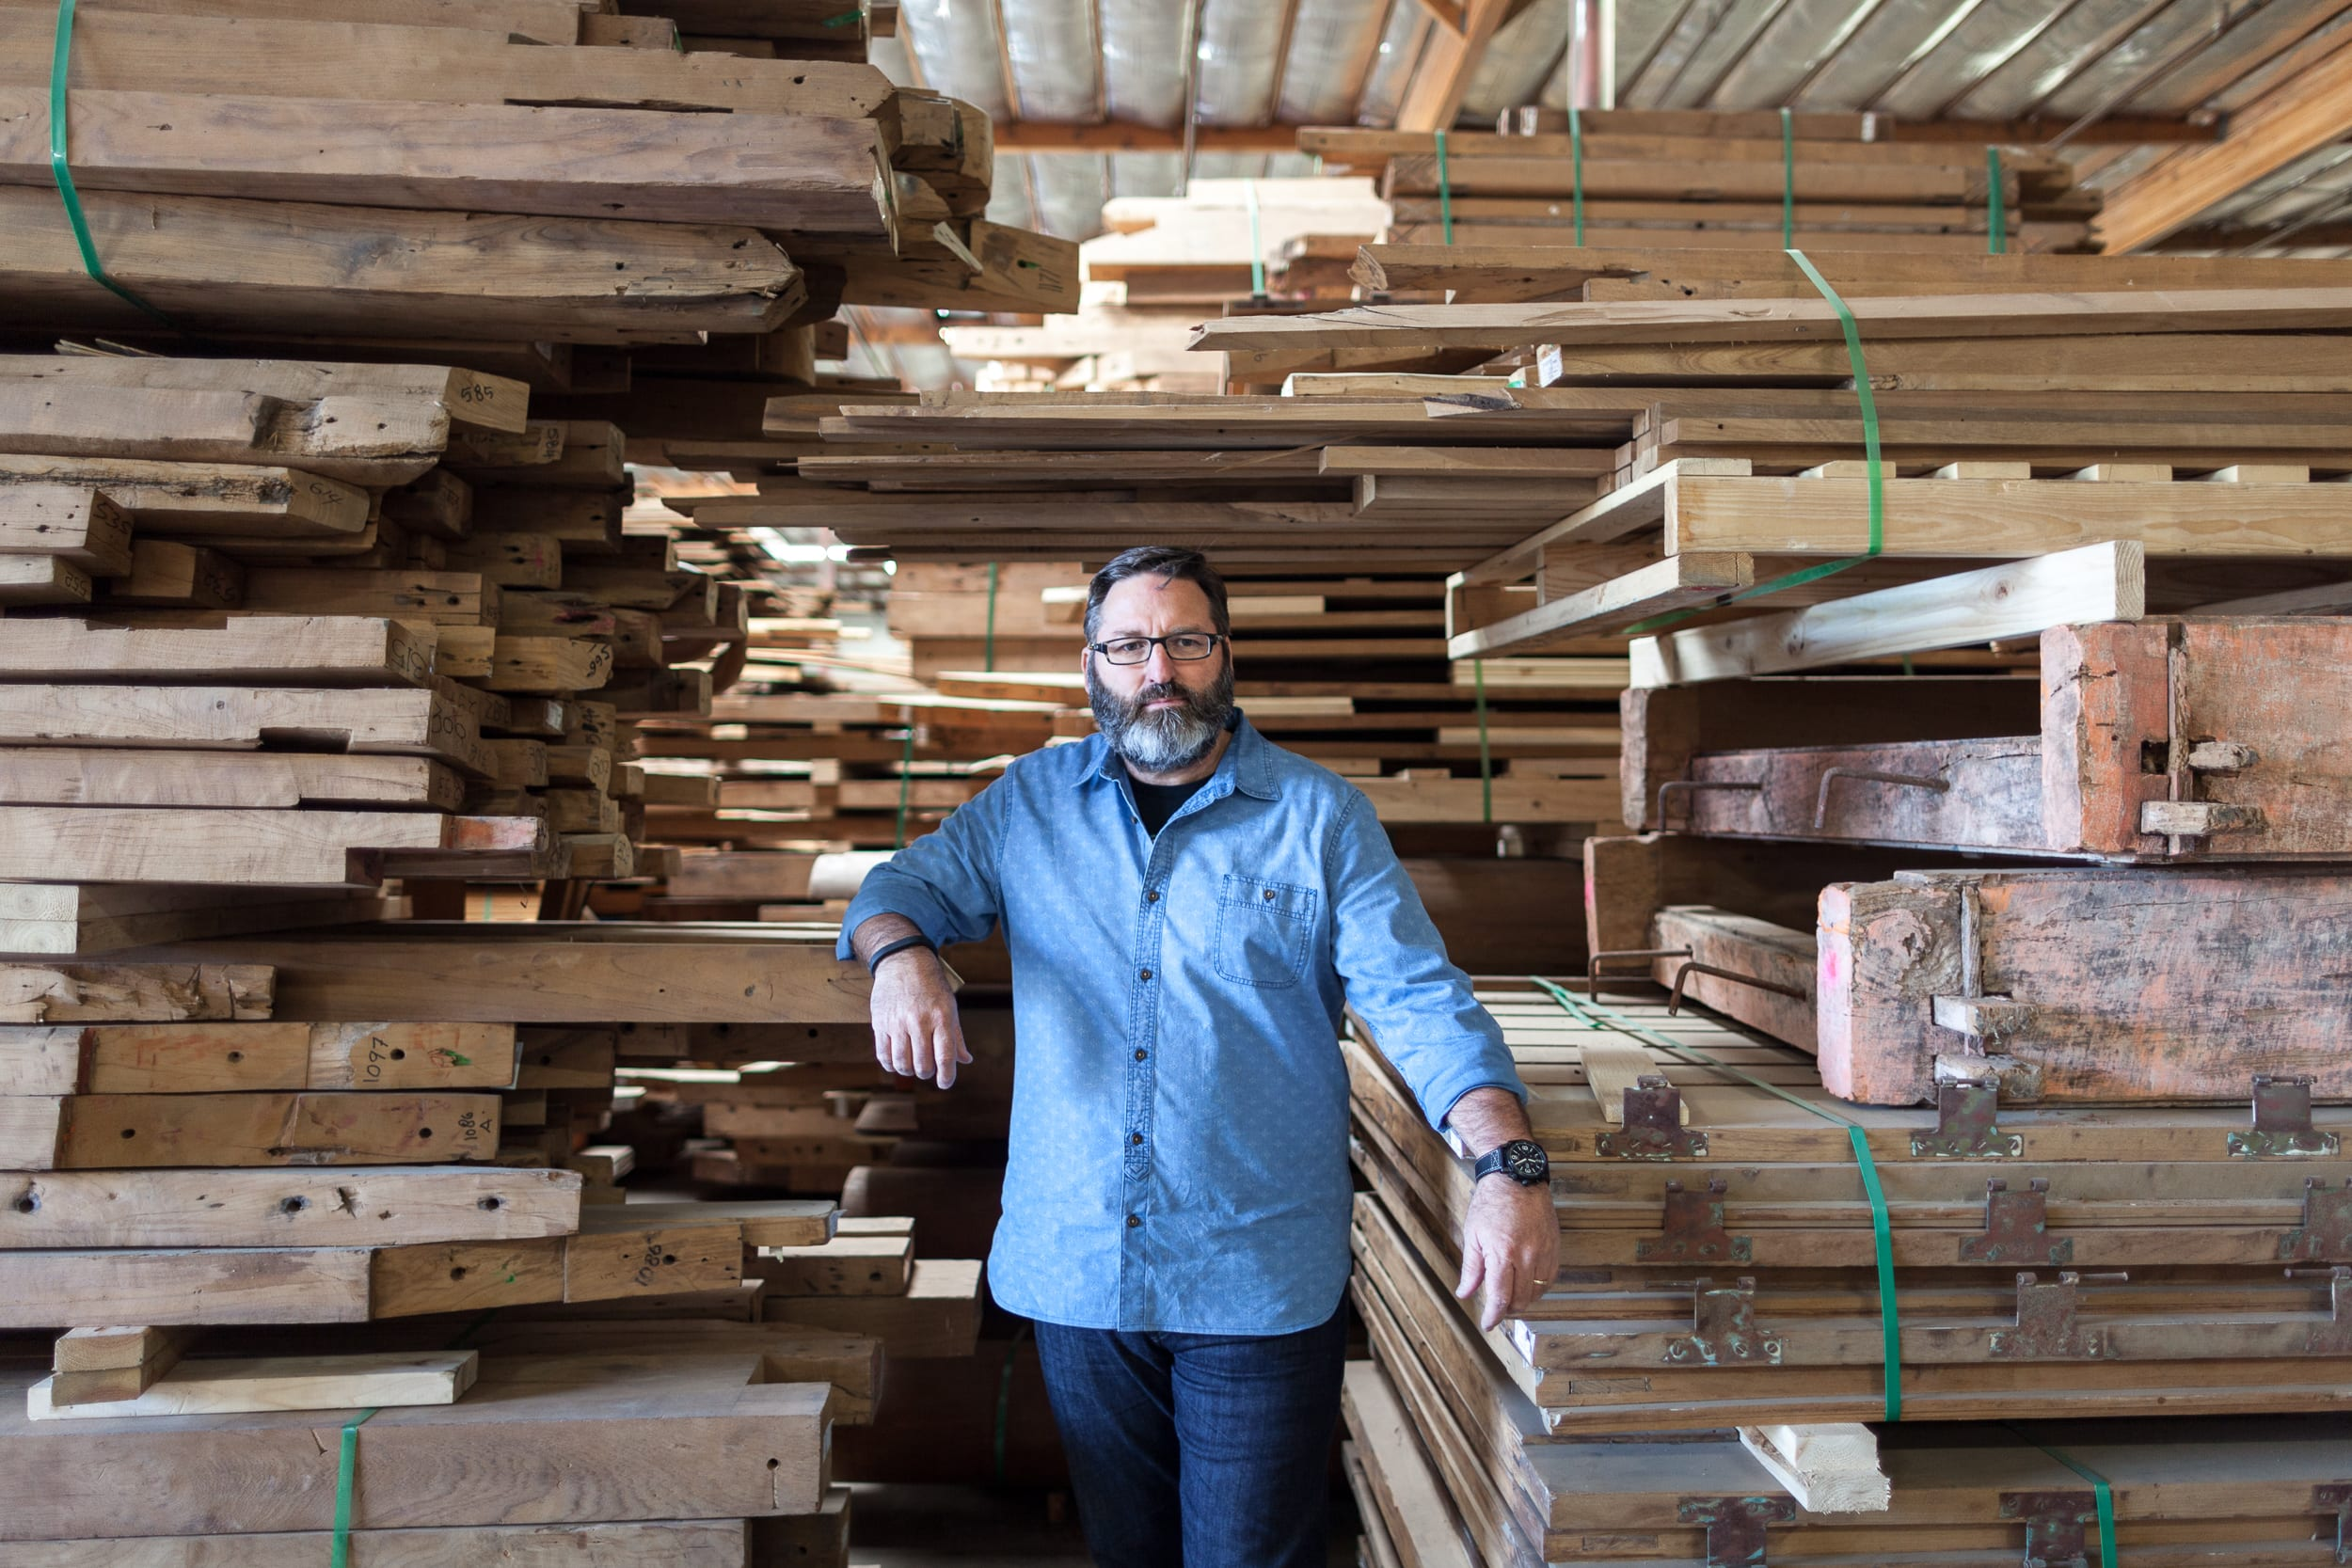 Stikwood inventor, Jerry McCall, standing next to stacks of real reclaimed wood that will become Stikwood peel and stick wood wall and ceiling planks.